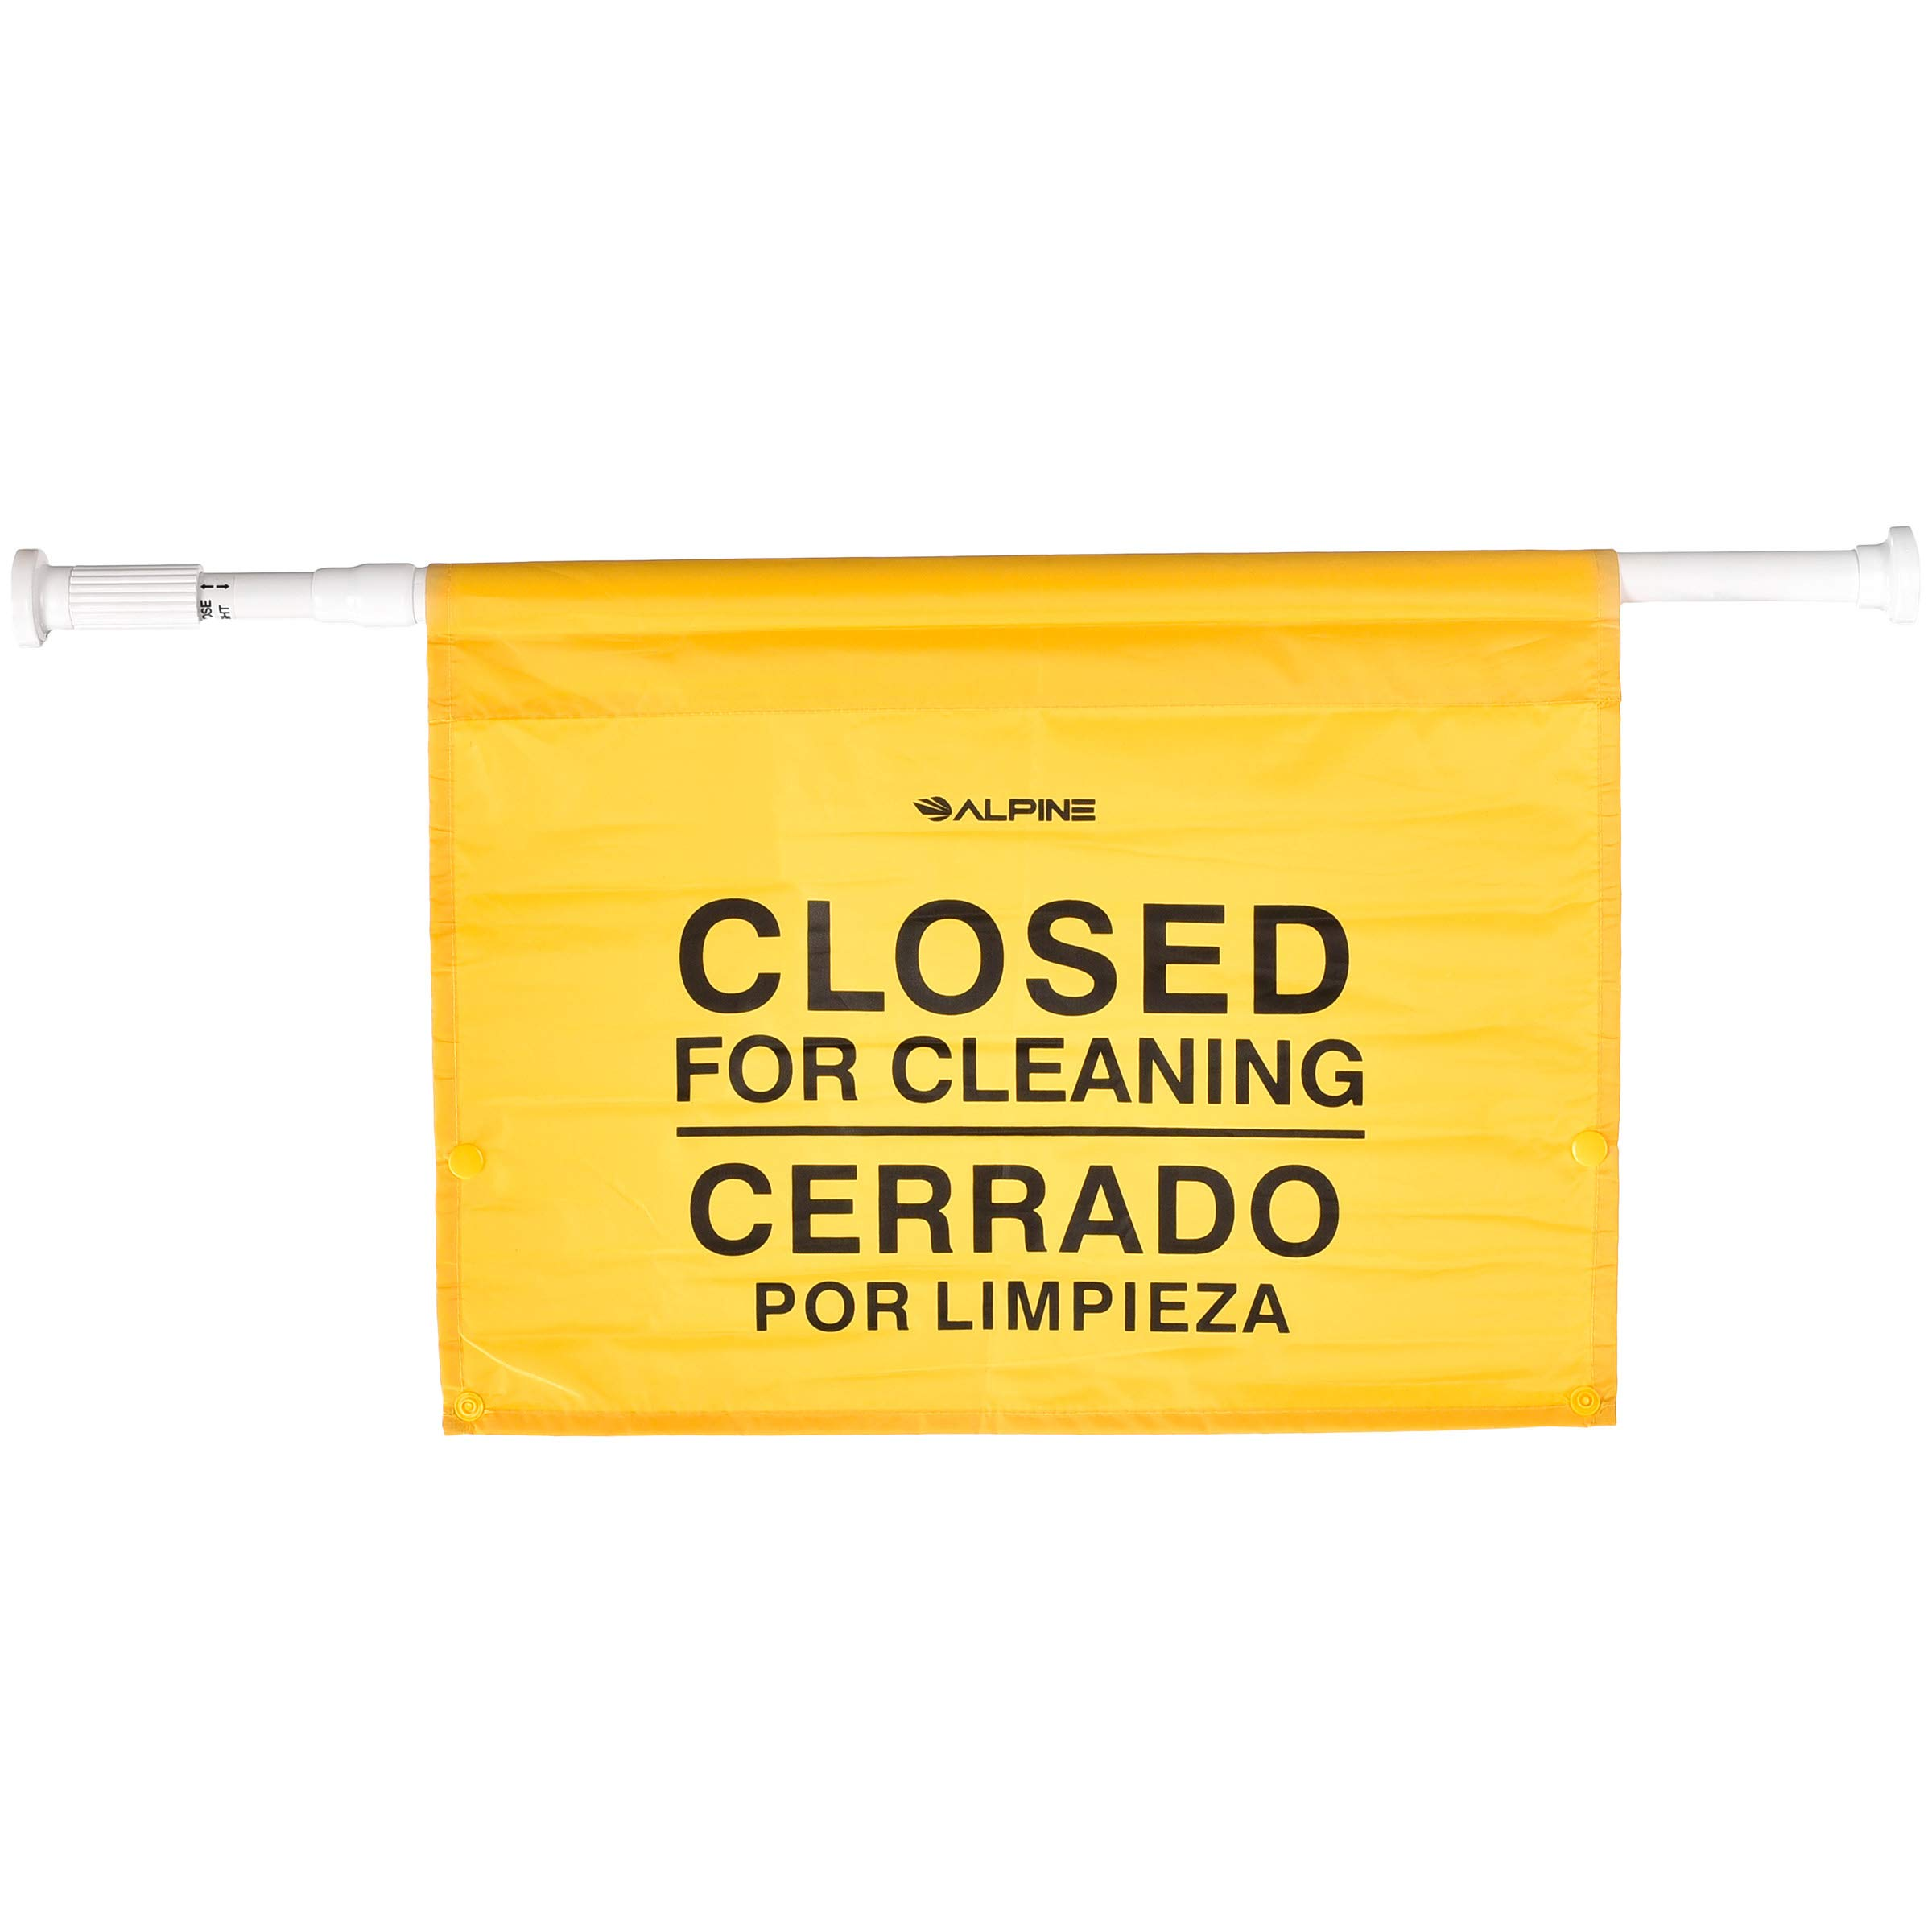 "Alpine Industries ""Closed for Cleaning"" Hanging Safety Sign - Heavy Duty Warning Precaution - for Establishments and Commercial Use"